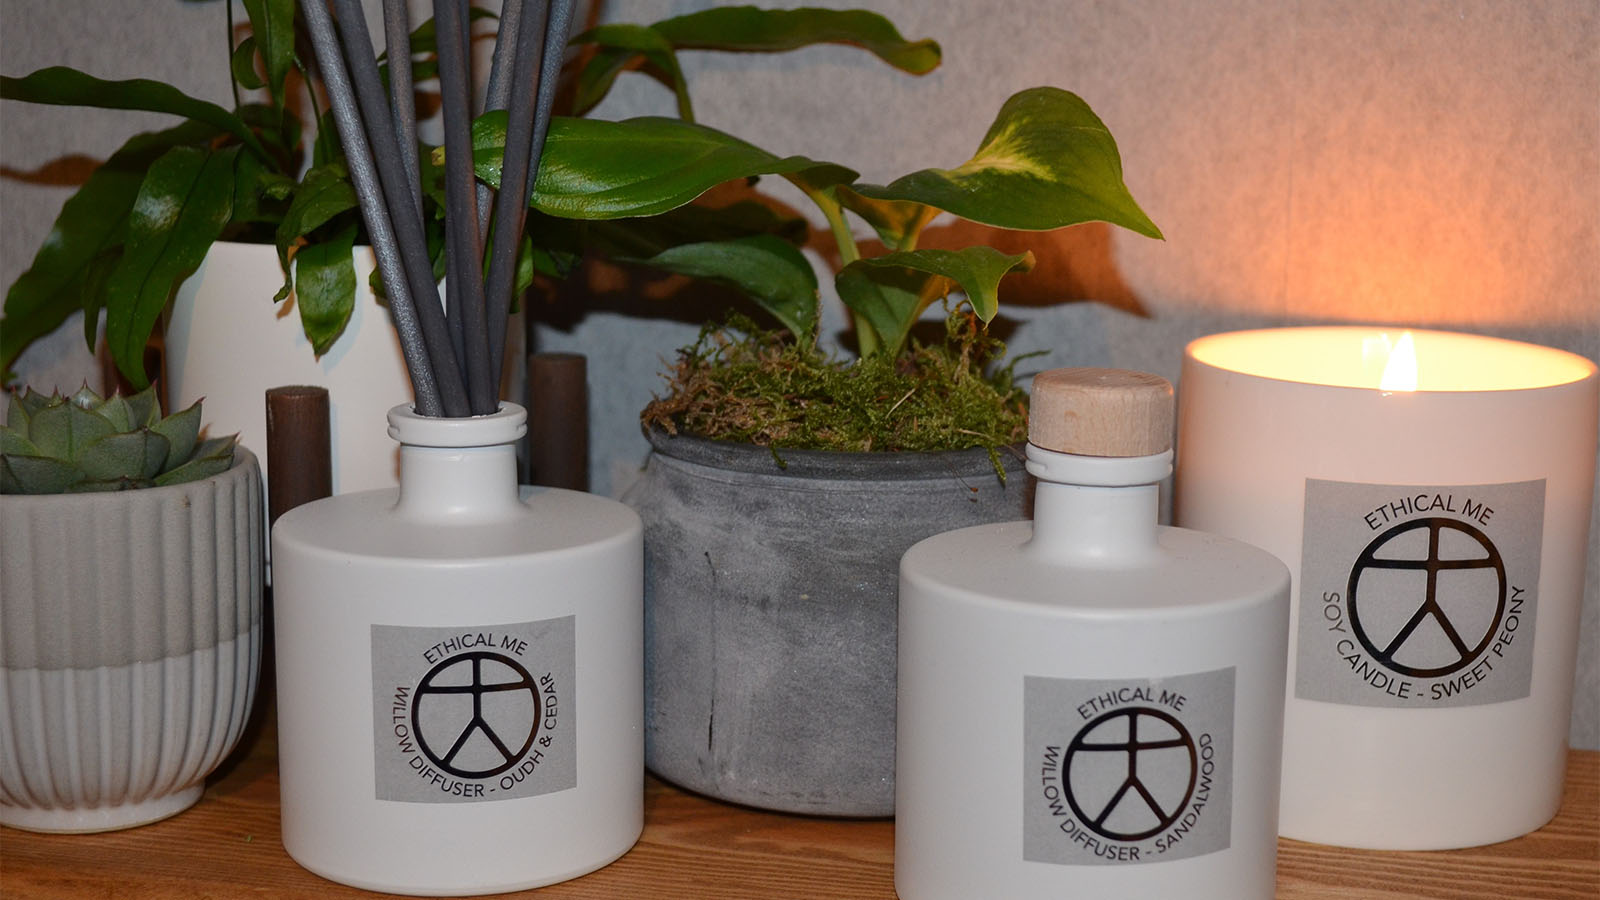 Ethical Me - White Patchouli